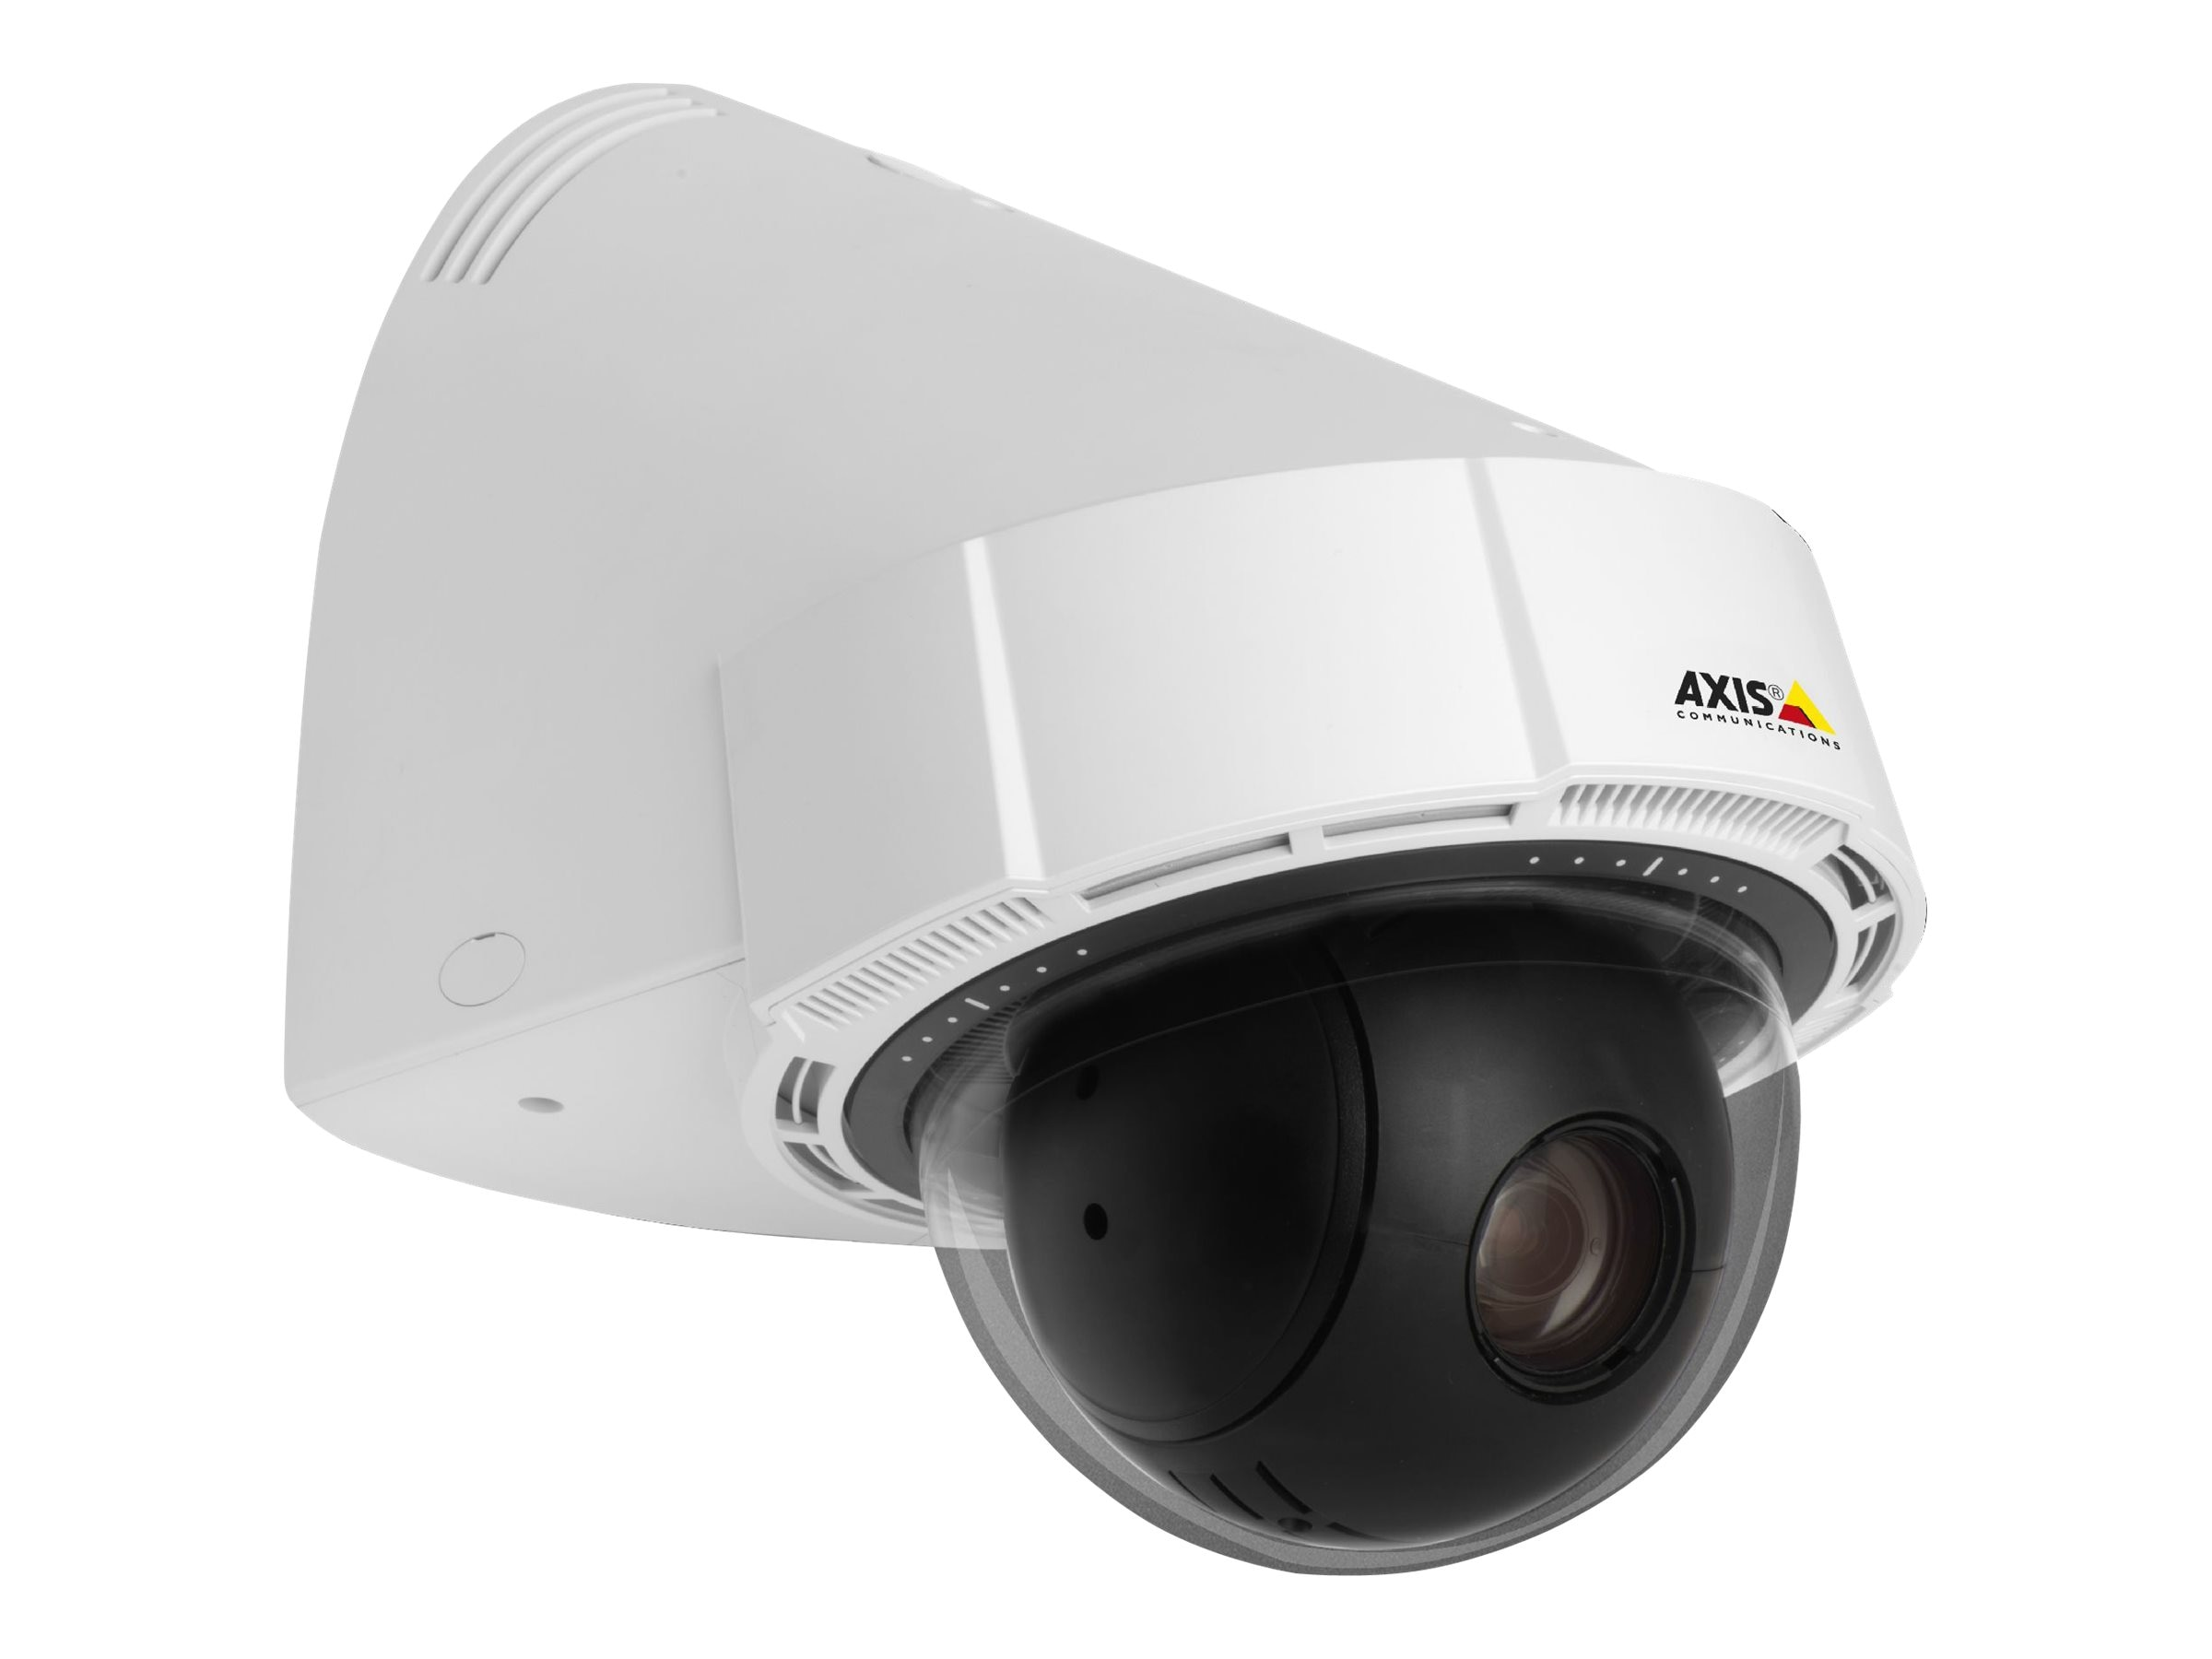 Axis P5415-E PTZ Network Dome Camera, 0589-001, 16566834, Cameras - Security